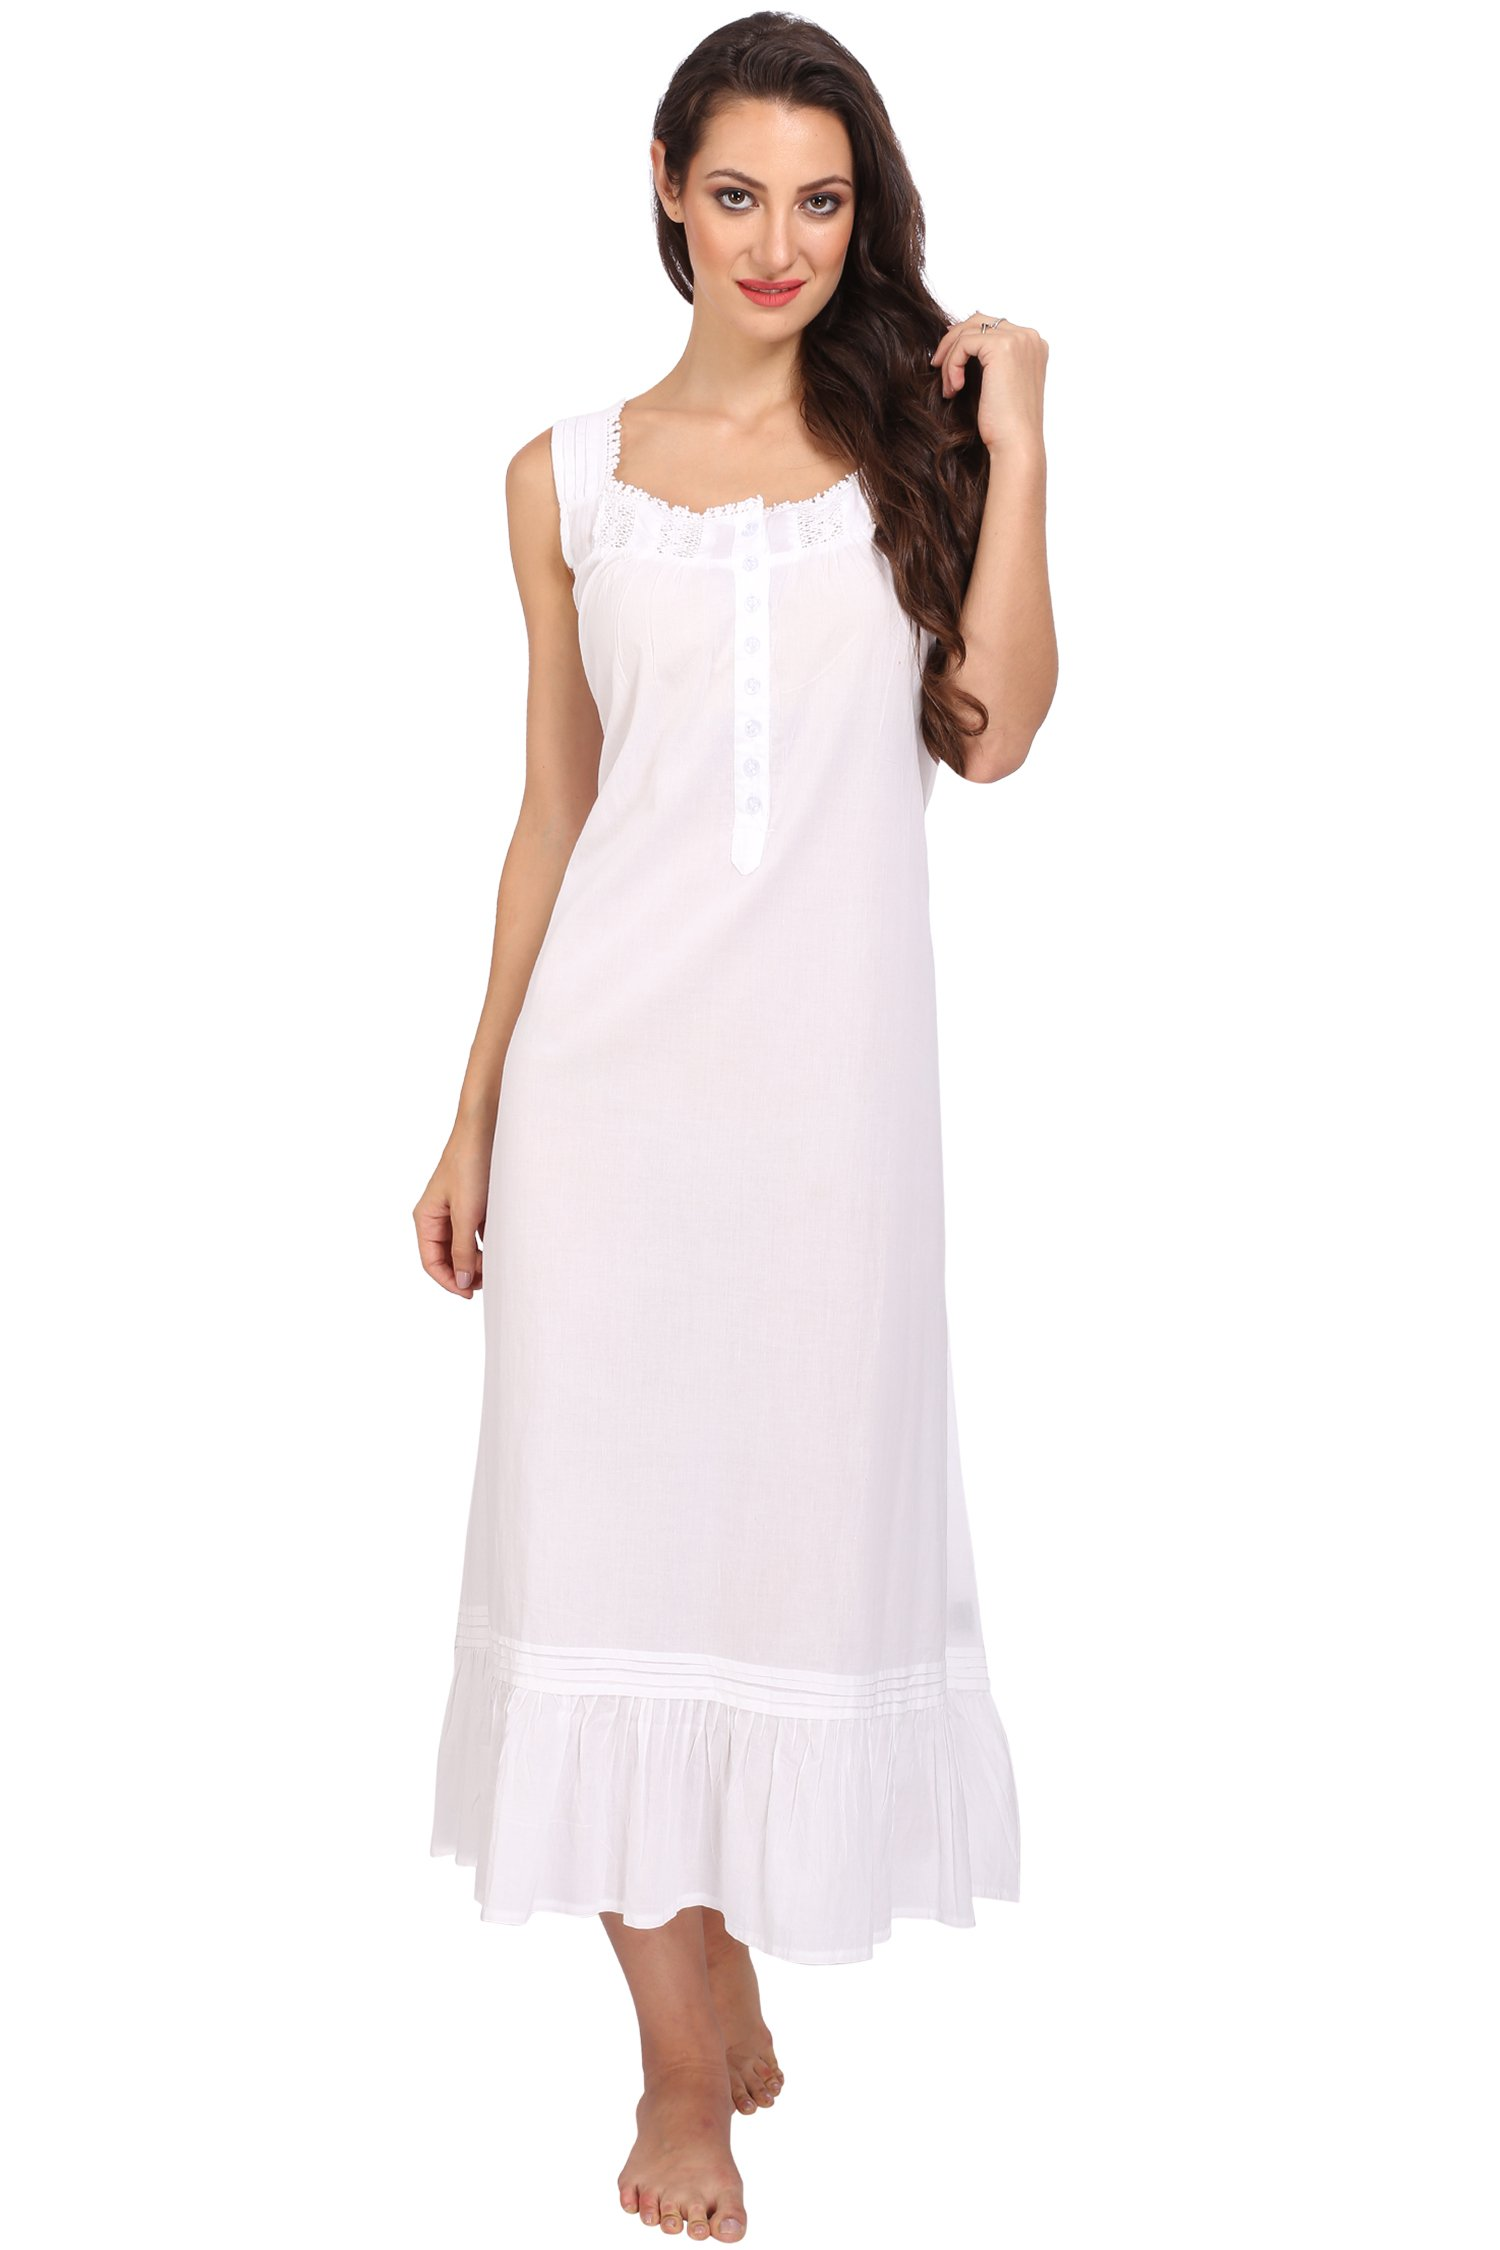 Miss Lavish Victorian Style Nightgown Sleeveless Long Sleepwear Women Cotton Plus Size Vintage Nightdress